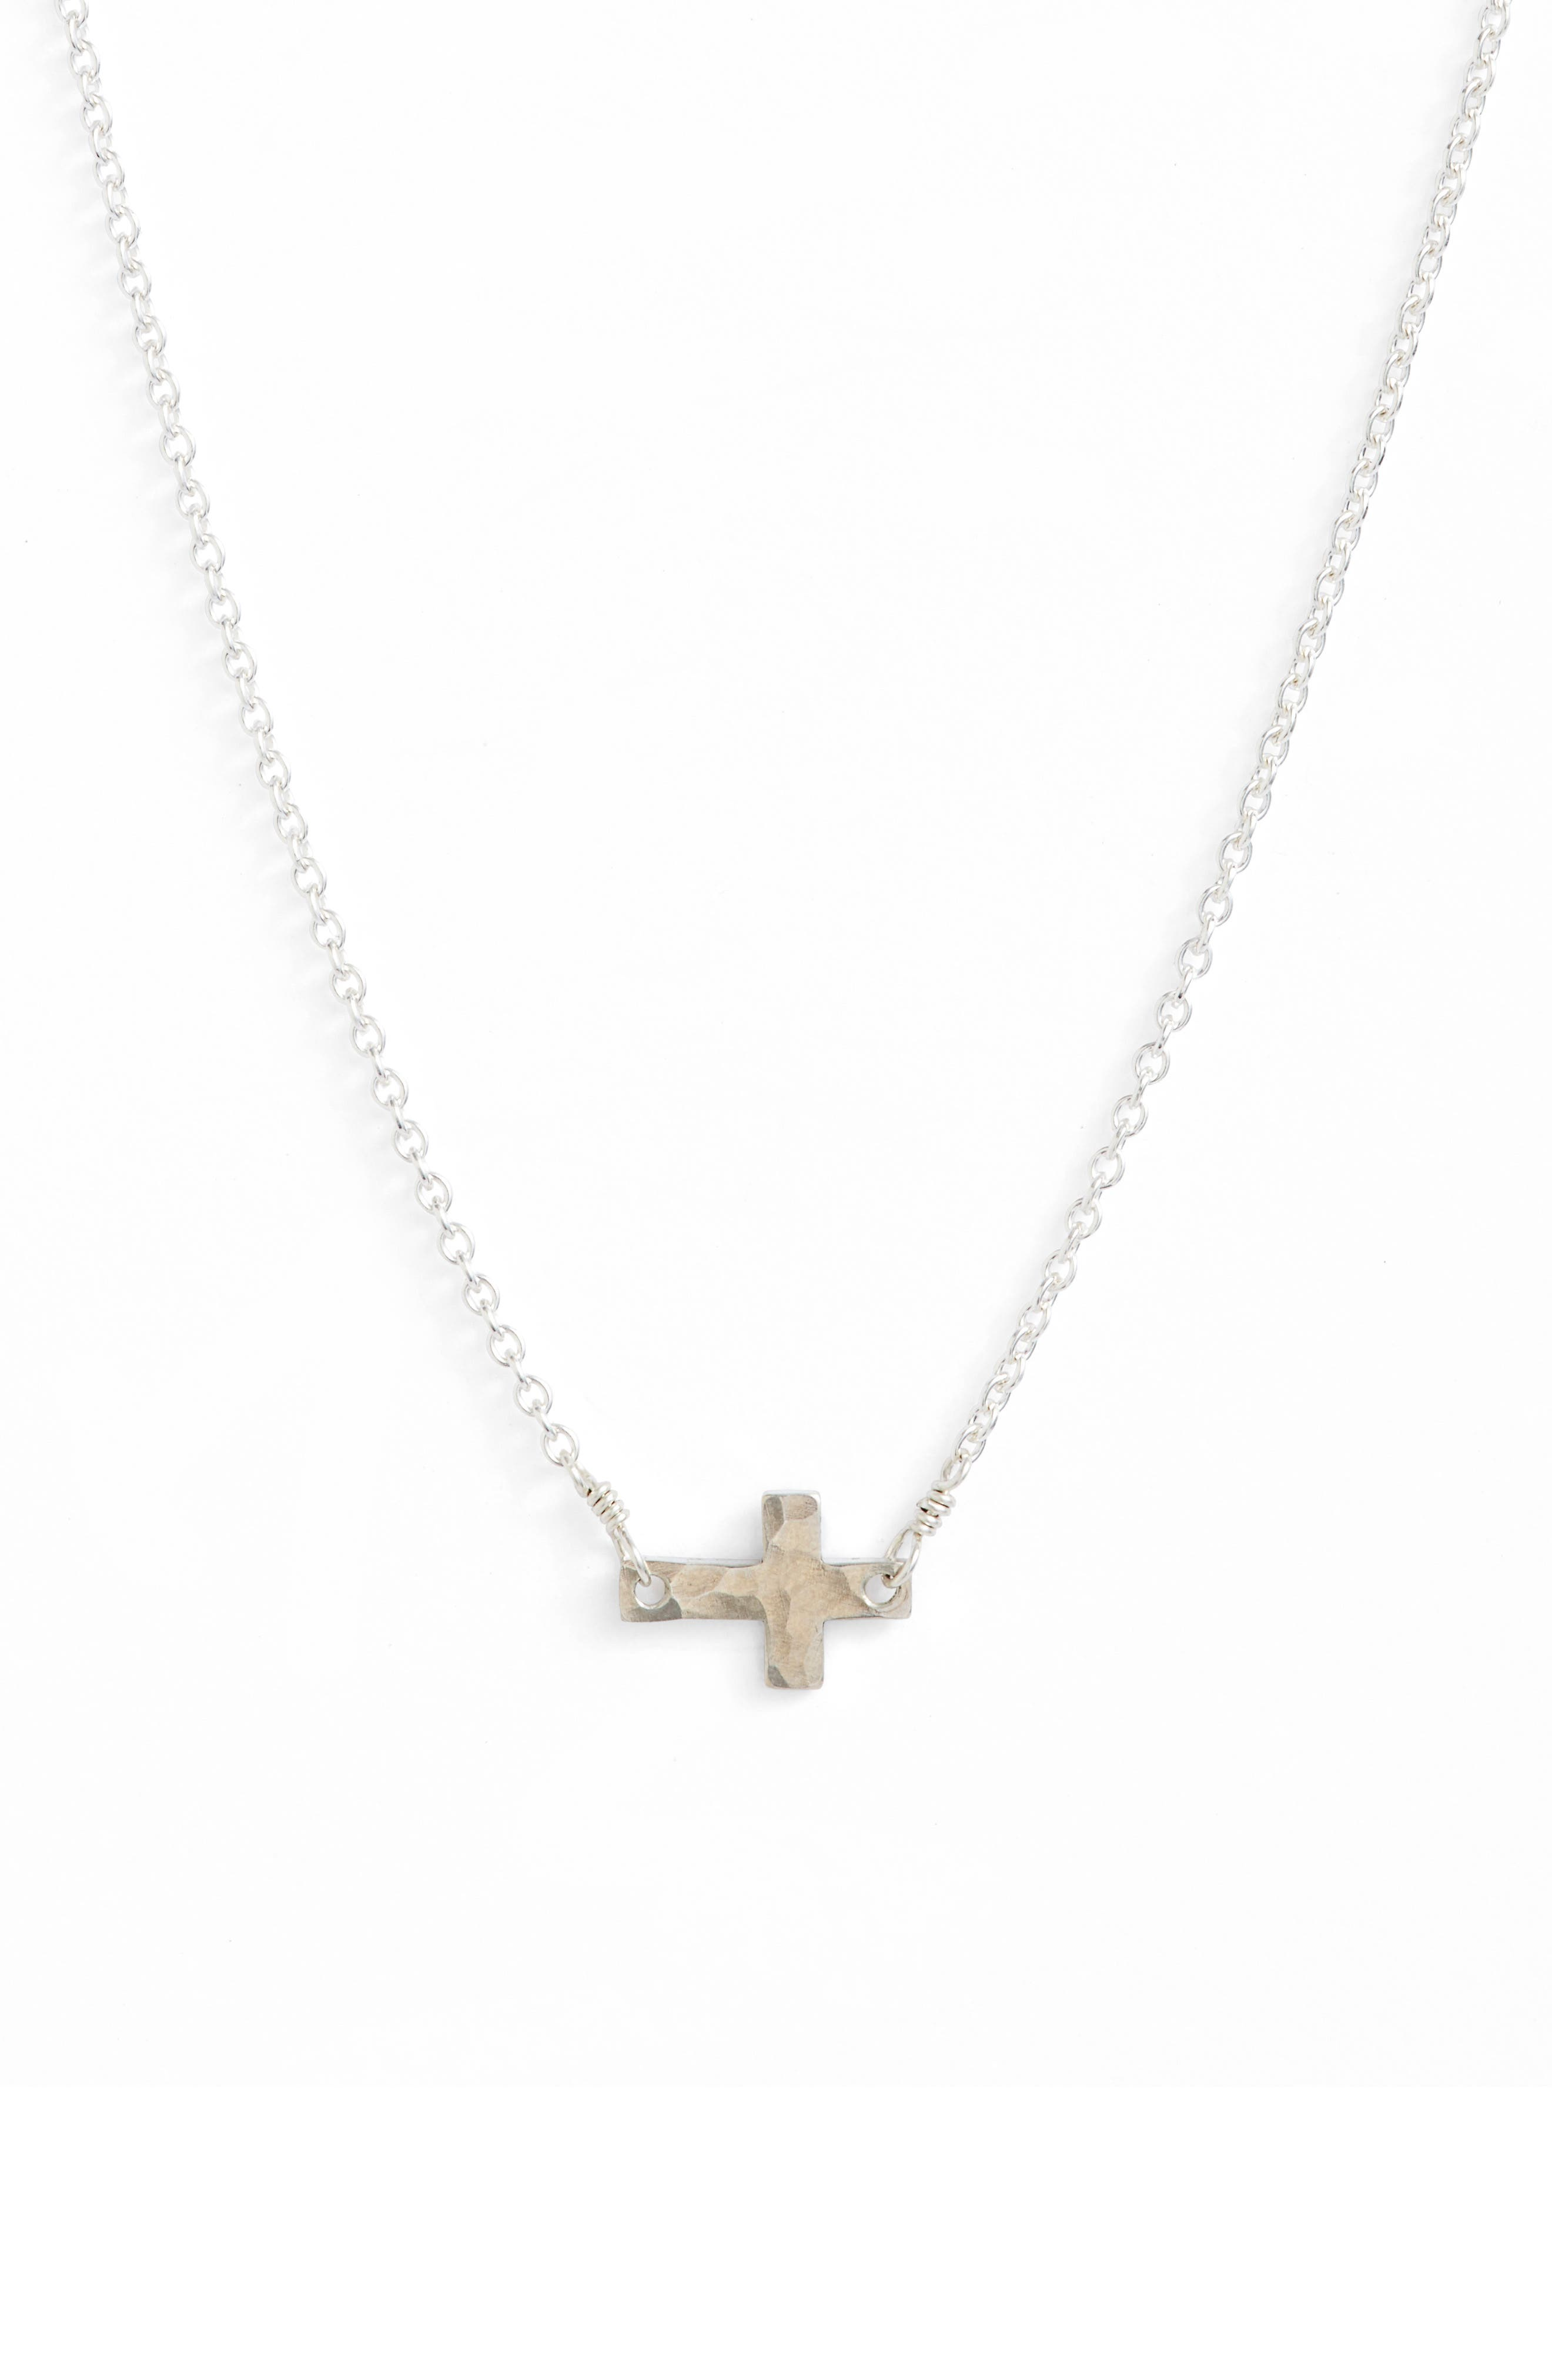 From humble beginnings to a fully staffed warehouse in Bend, Oregon, Nashelle remains true to its original purpose-handmade jewelry crafted with love and intention. A hand-shaped cross anchored by dual rings makes this gleaming necklace a perfect layering piece. Style Name: Nashelle Side Cross Pendant Necklace. Style Number: 5364423. Available in stores.